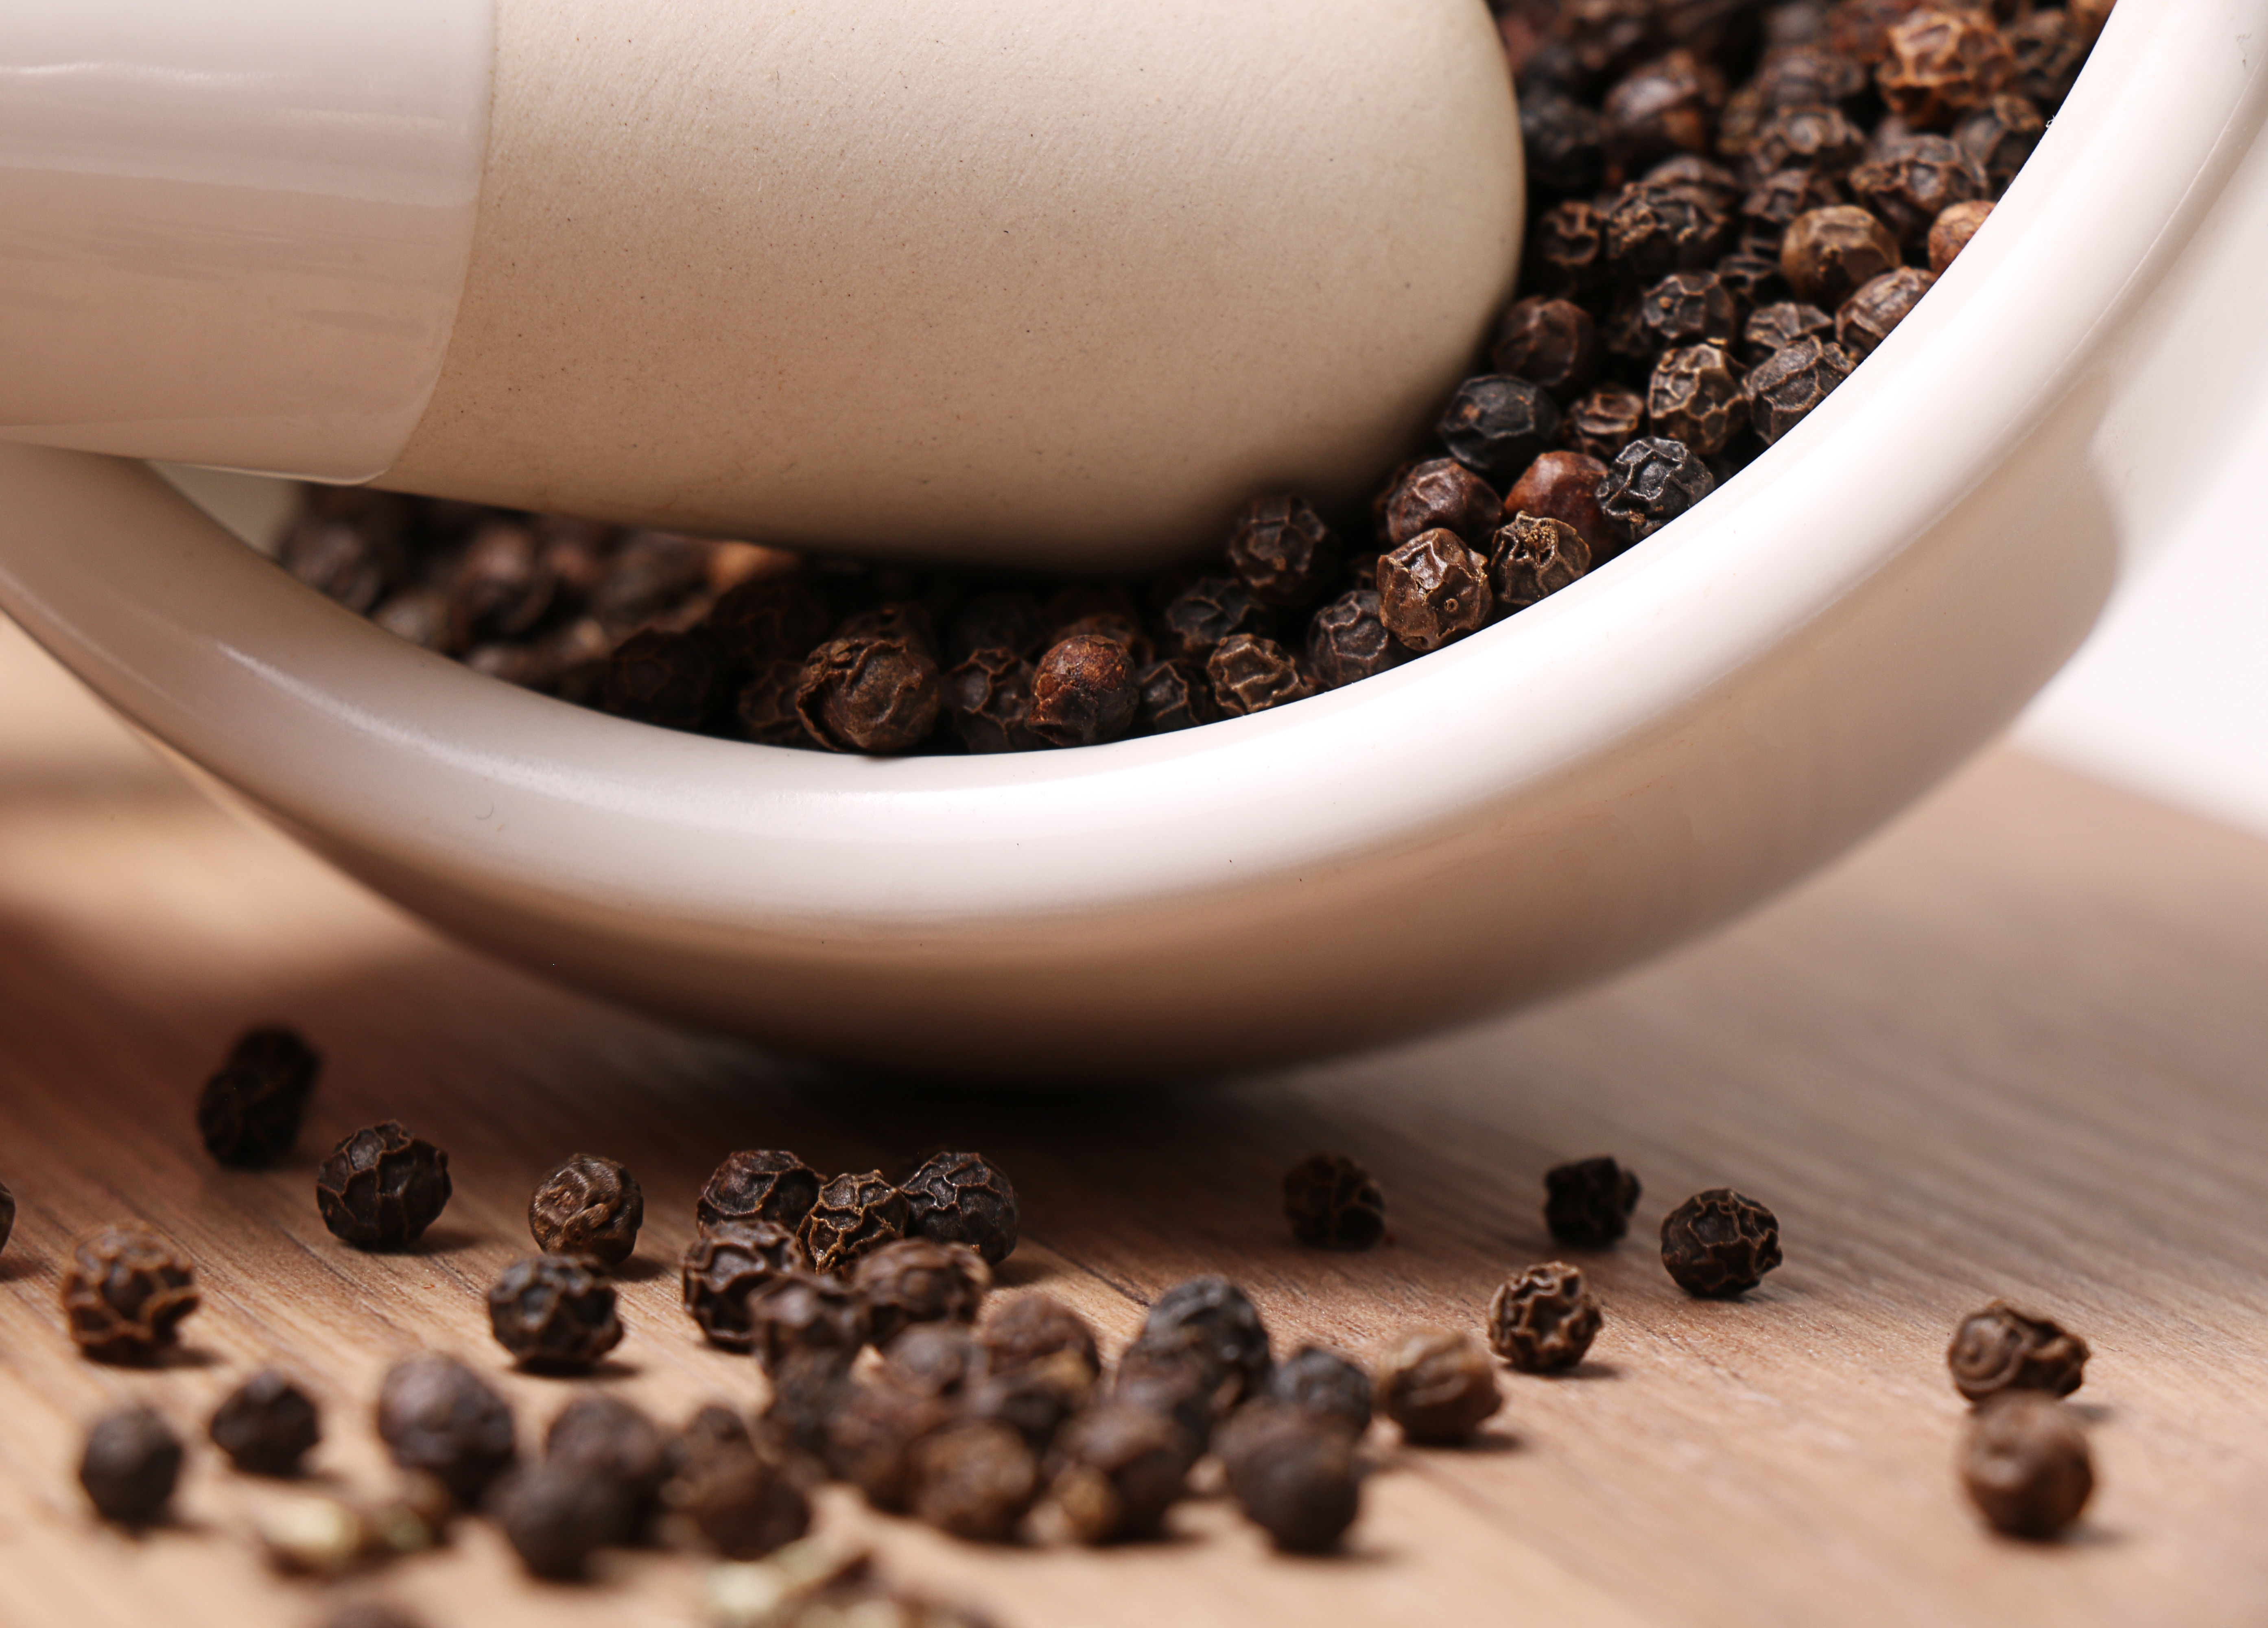 Why Acid Reflux Can Cause Pepper Taste in Mouth